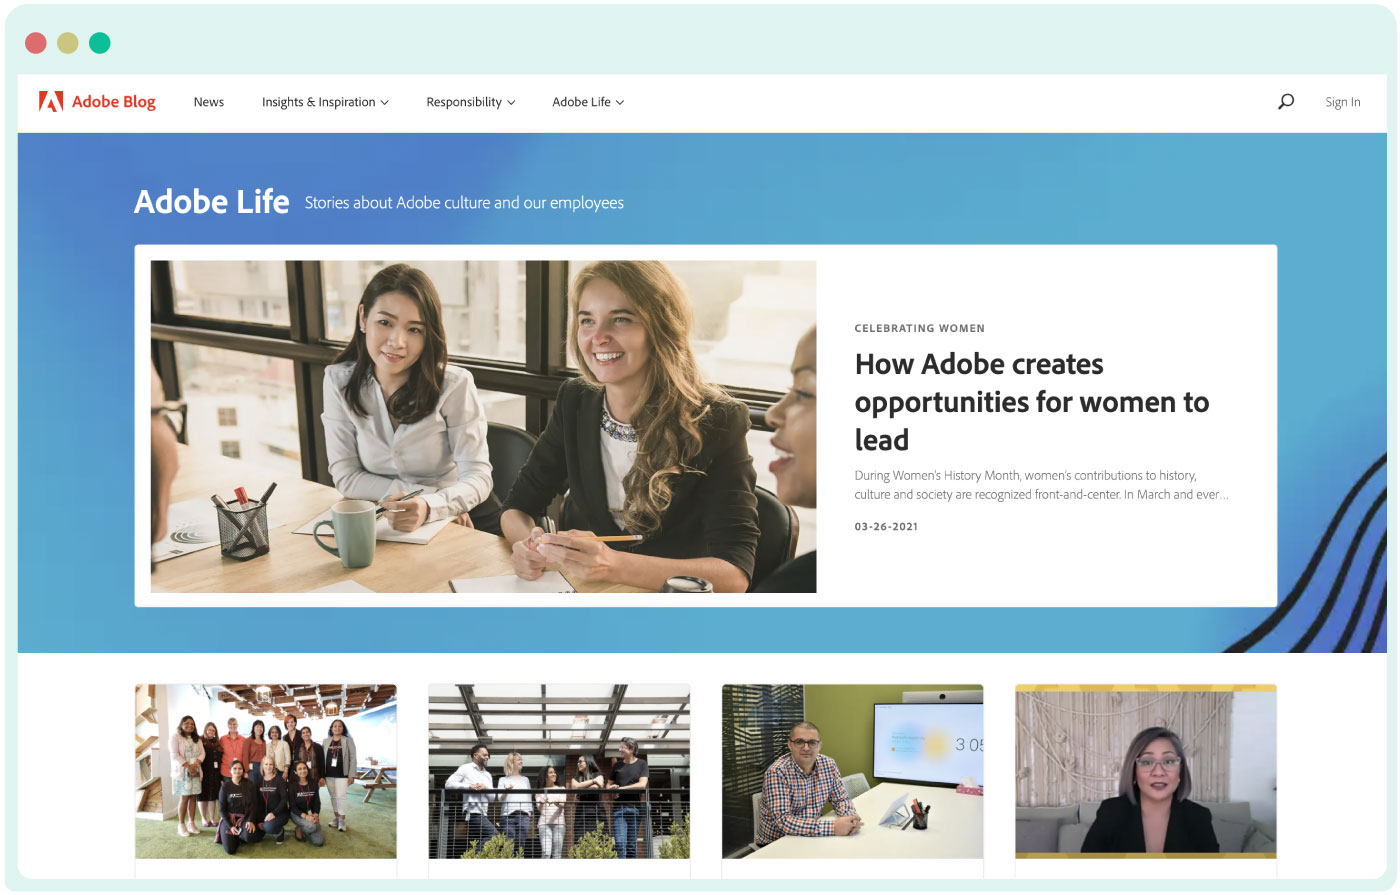 A day in the Adobe life blog